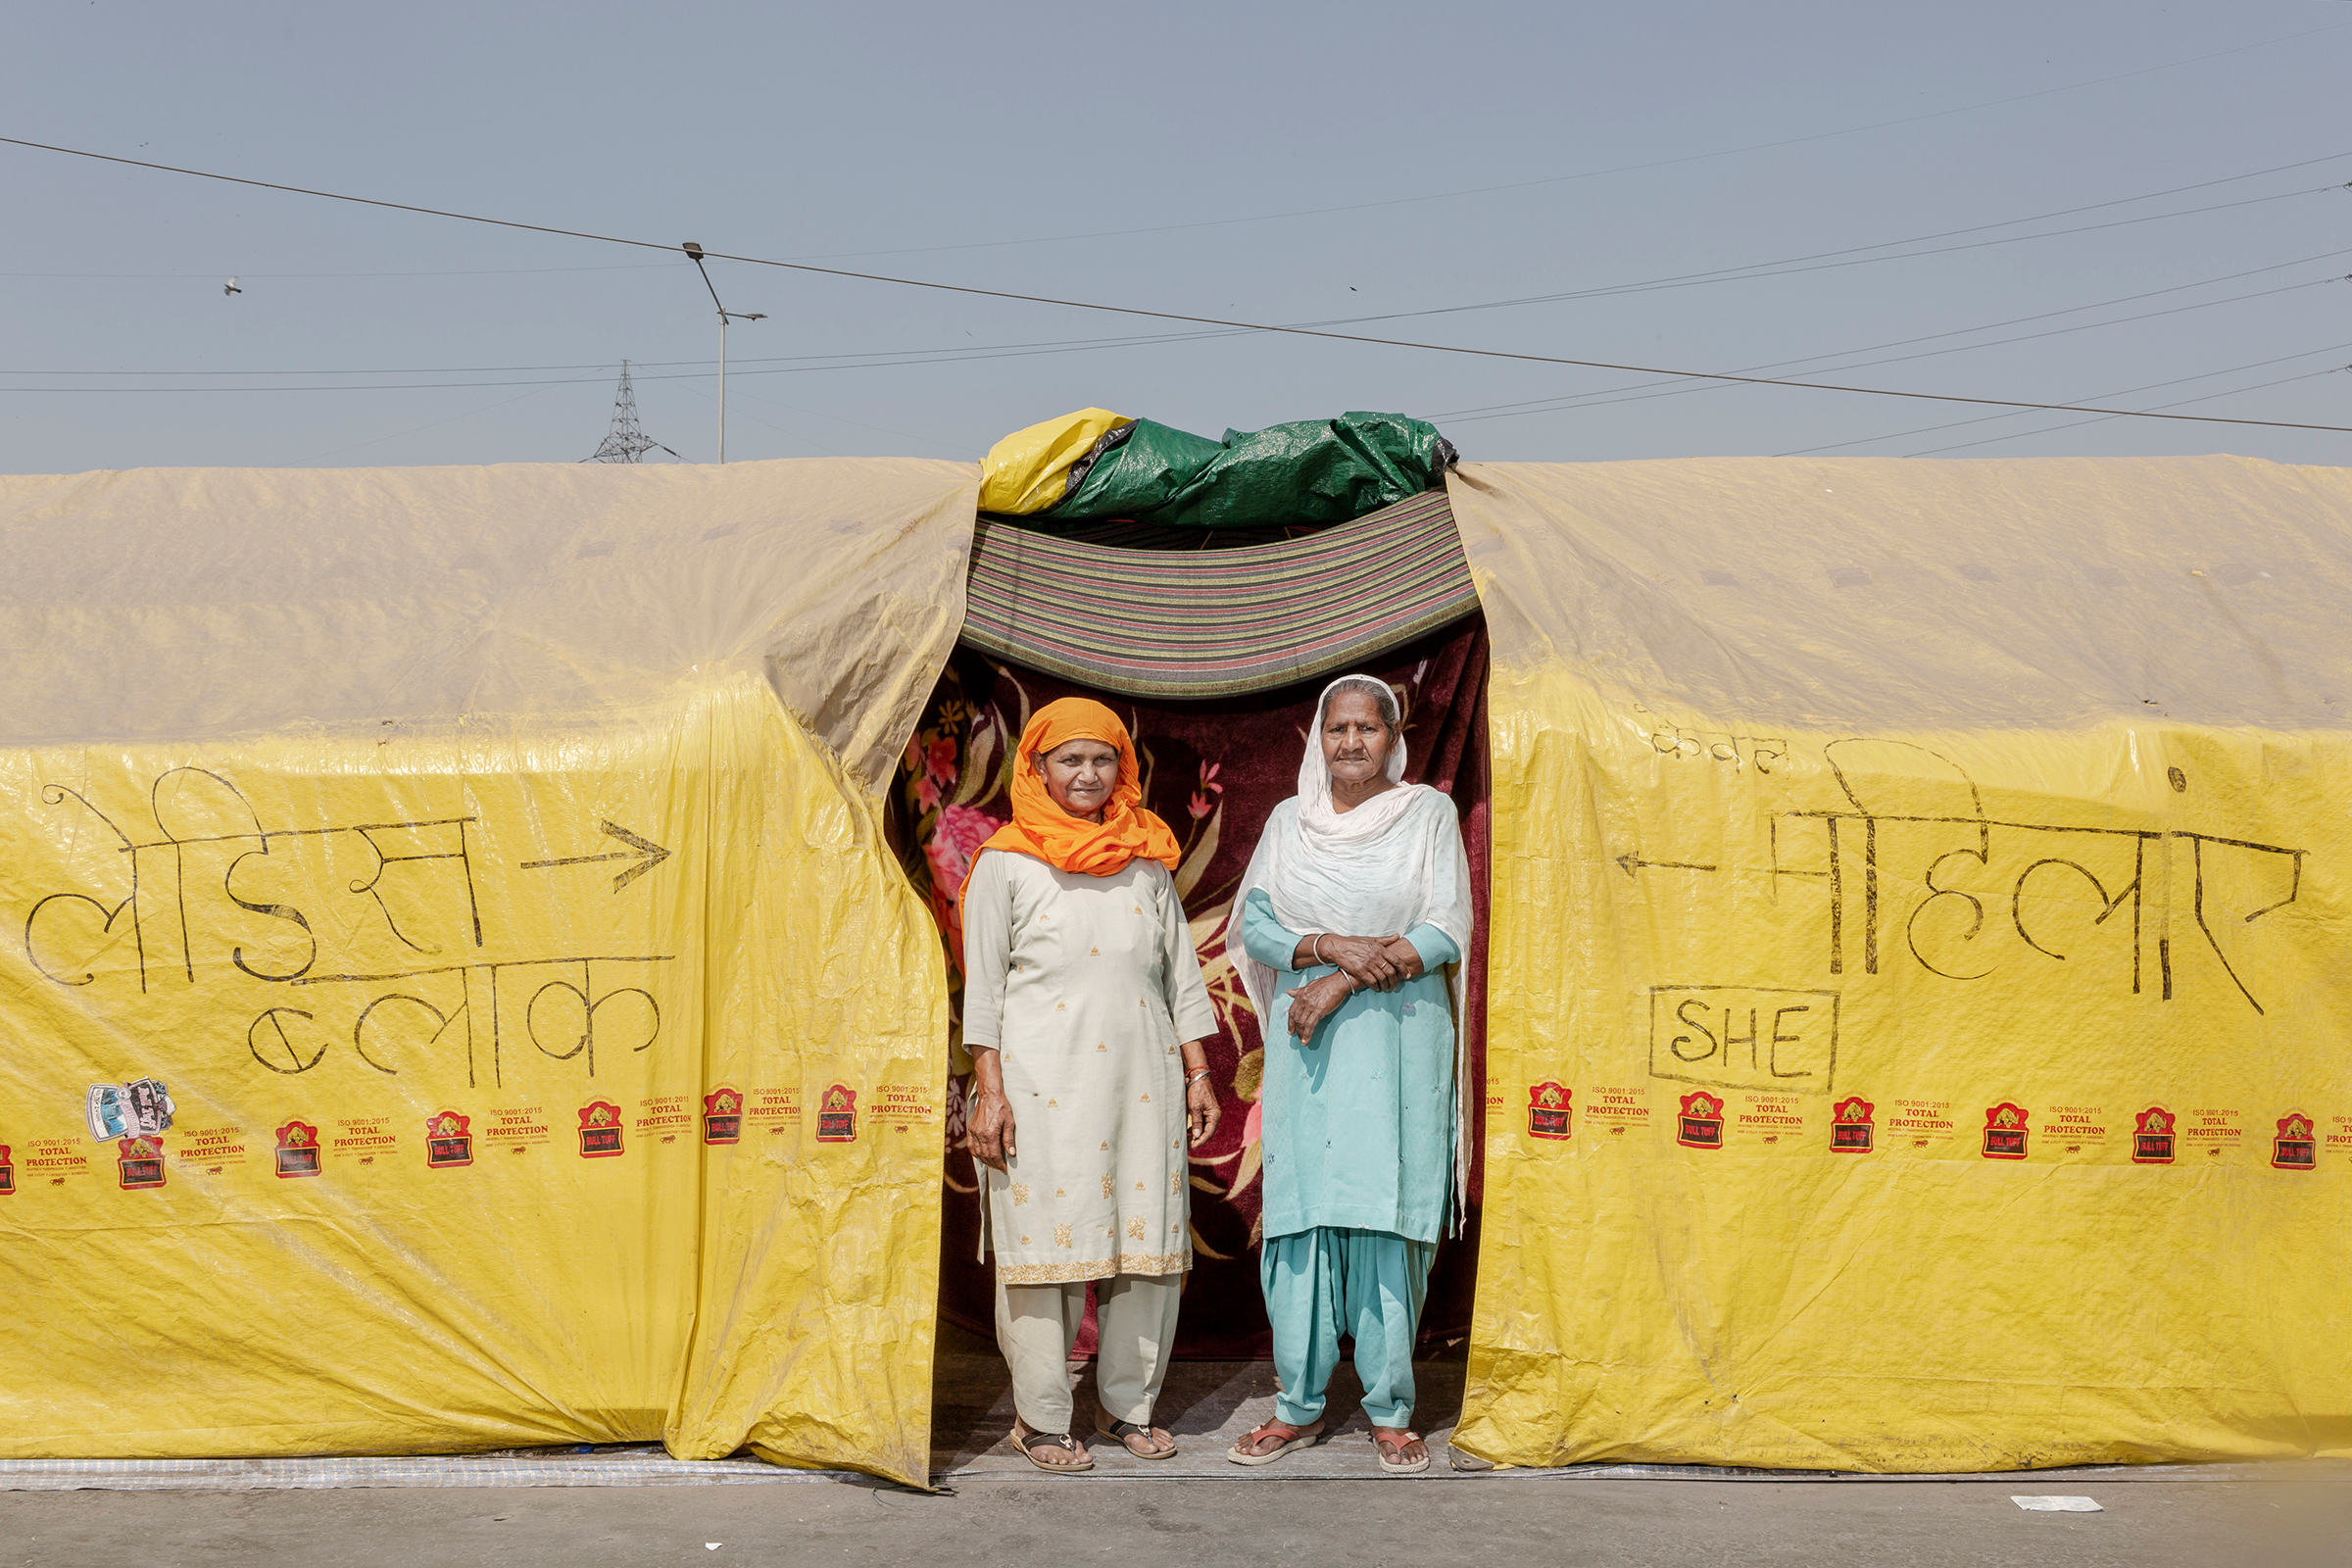 """Sarjit Kaur, left, and Dilbeer Kaur, right, from Rampur, Uttar Pradesh, have been at the protests for two months. """"We are here to show solidarity and support,"""" Dilbeer says. Prime Minister Modi is """"making us leave our farms and sit here to fight for our rights. We are here to get these laws repealed, and we will be here till we get it done."""""""